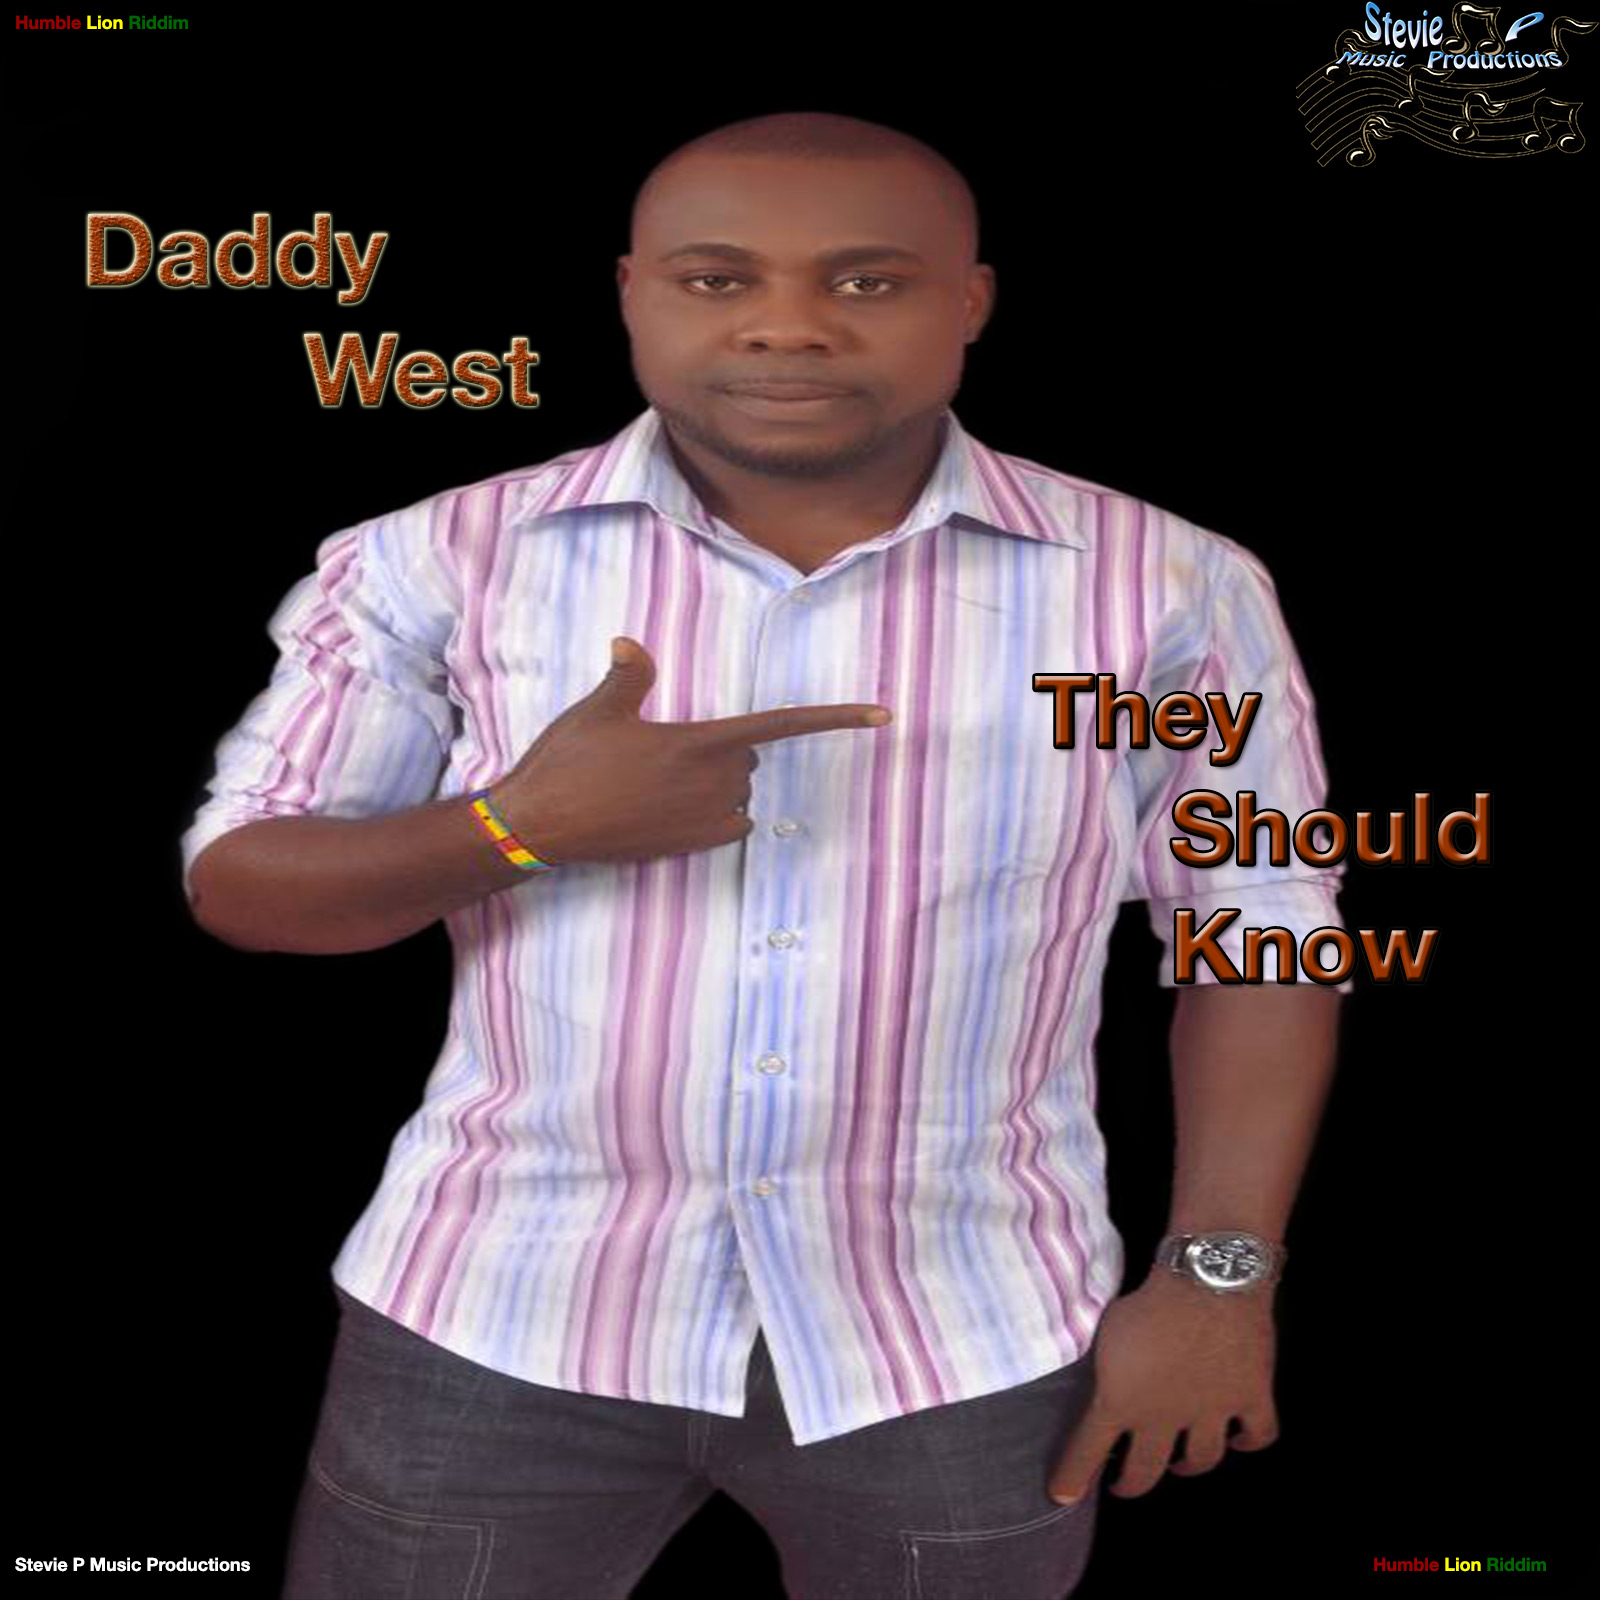 Daddy-West-(Humble-Lion-Riddim-)